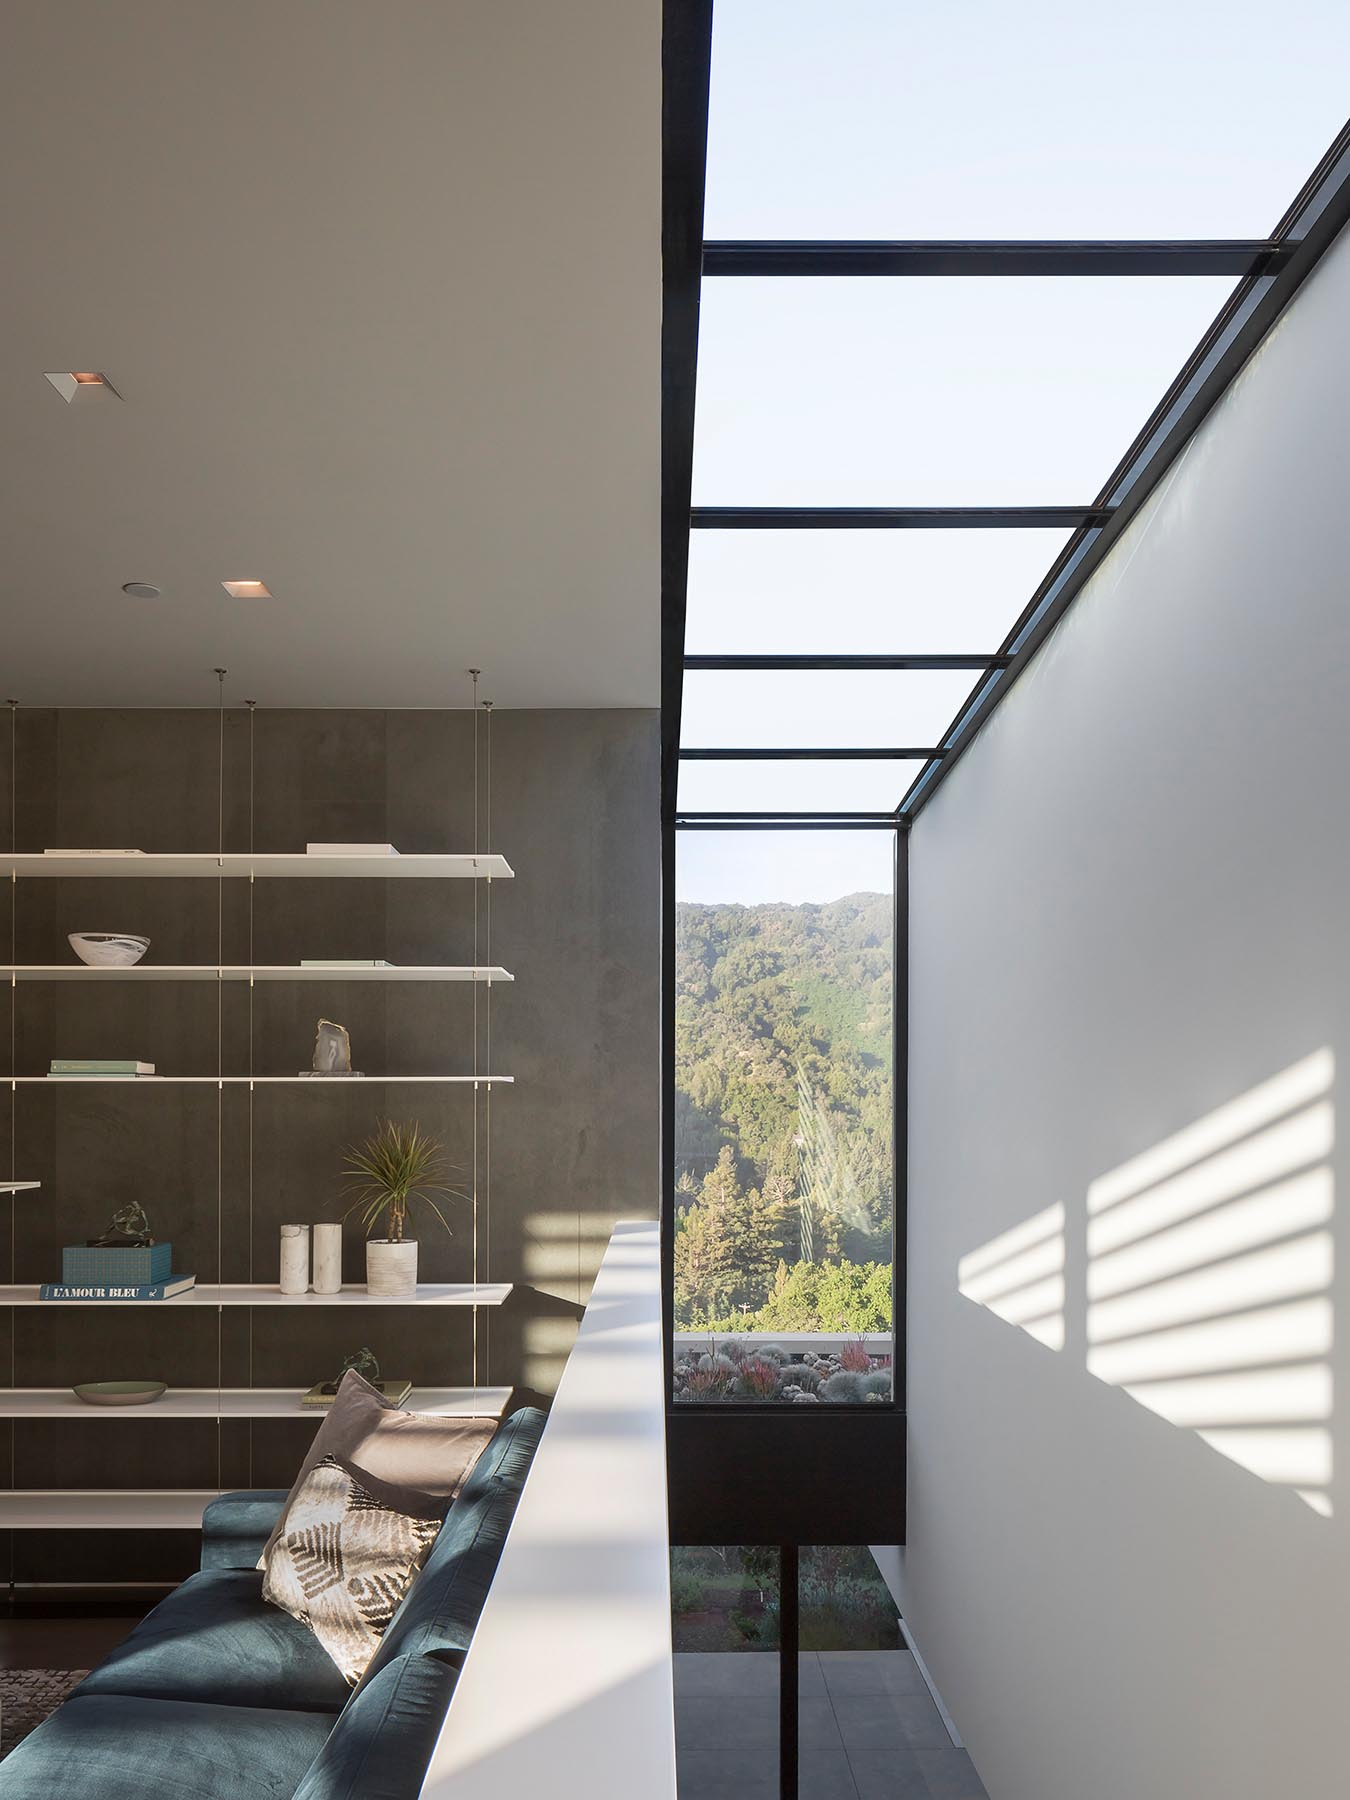 This modern house has a window that slices through a double height interior space.